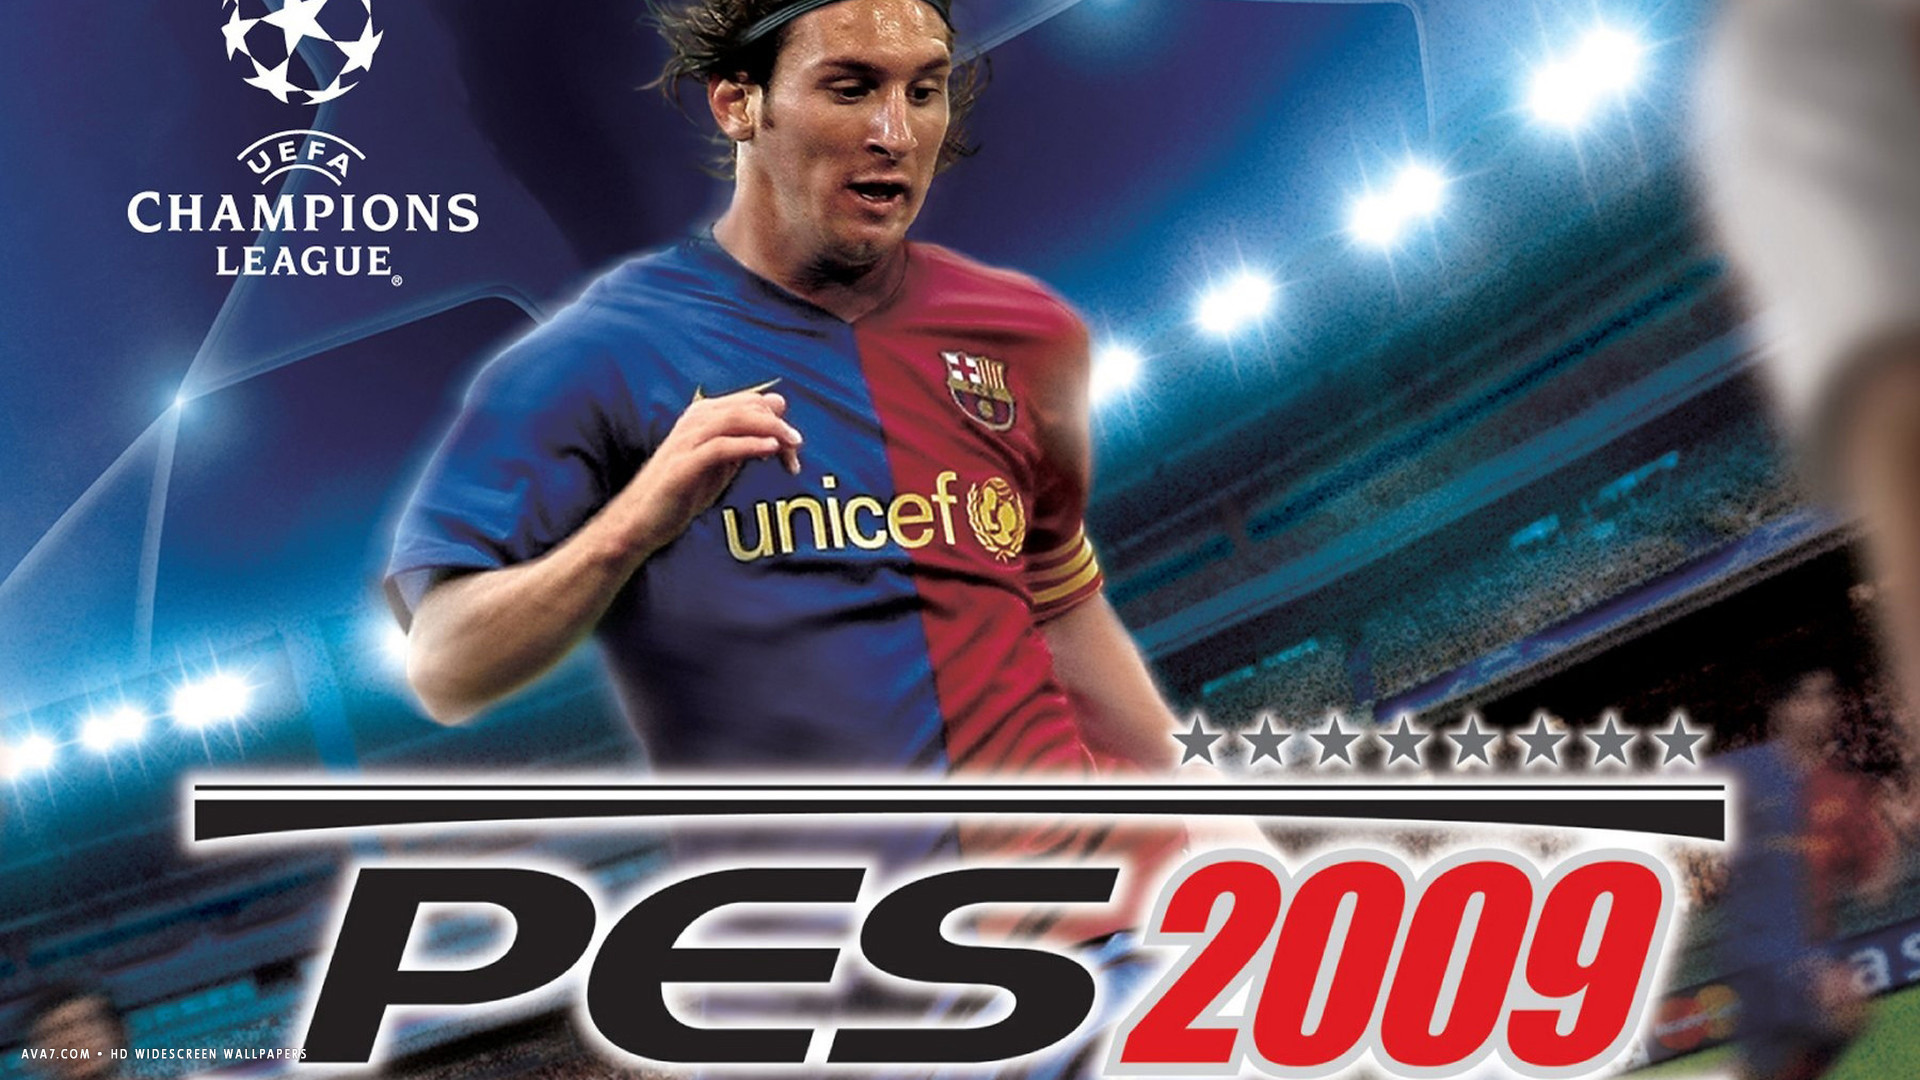 pro evolution soccer 2009 game hd widescreen wallpaper